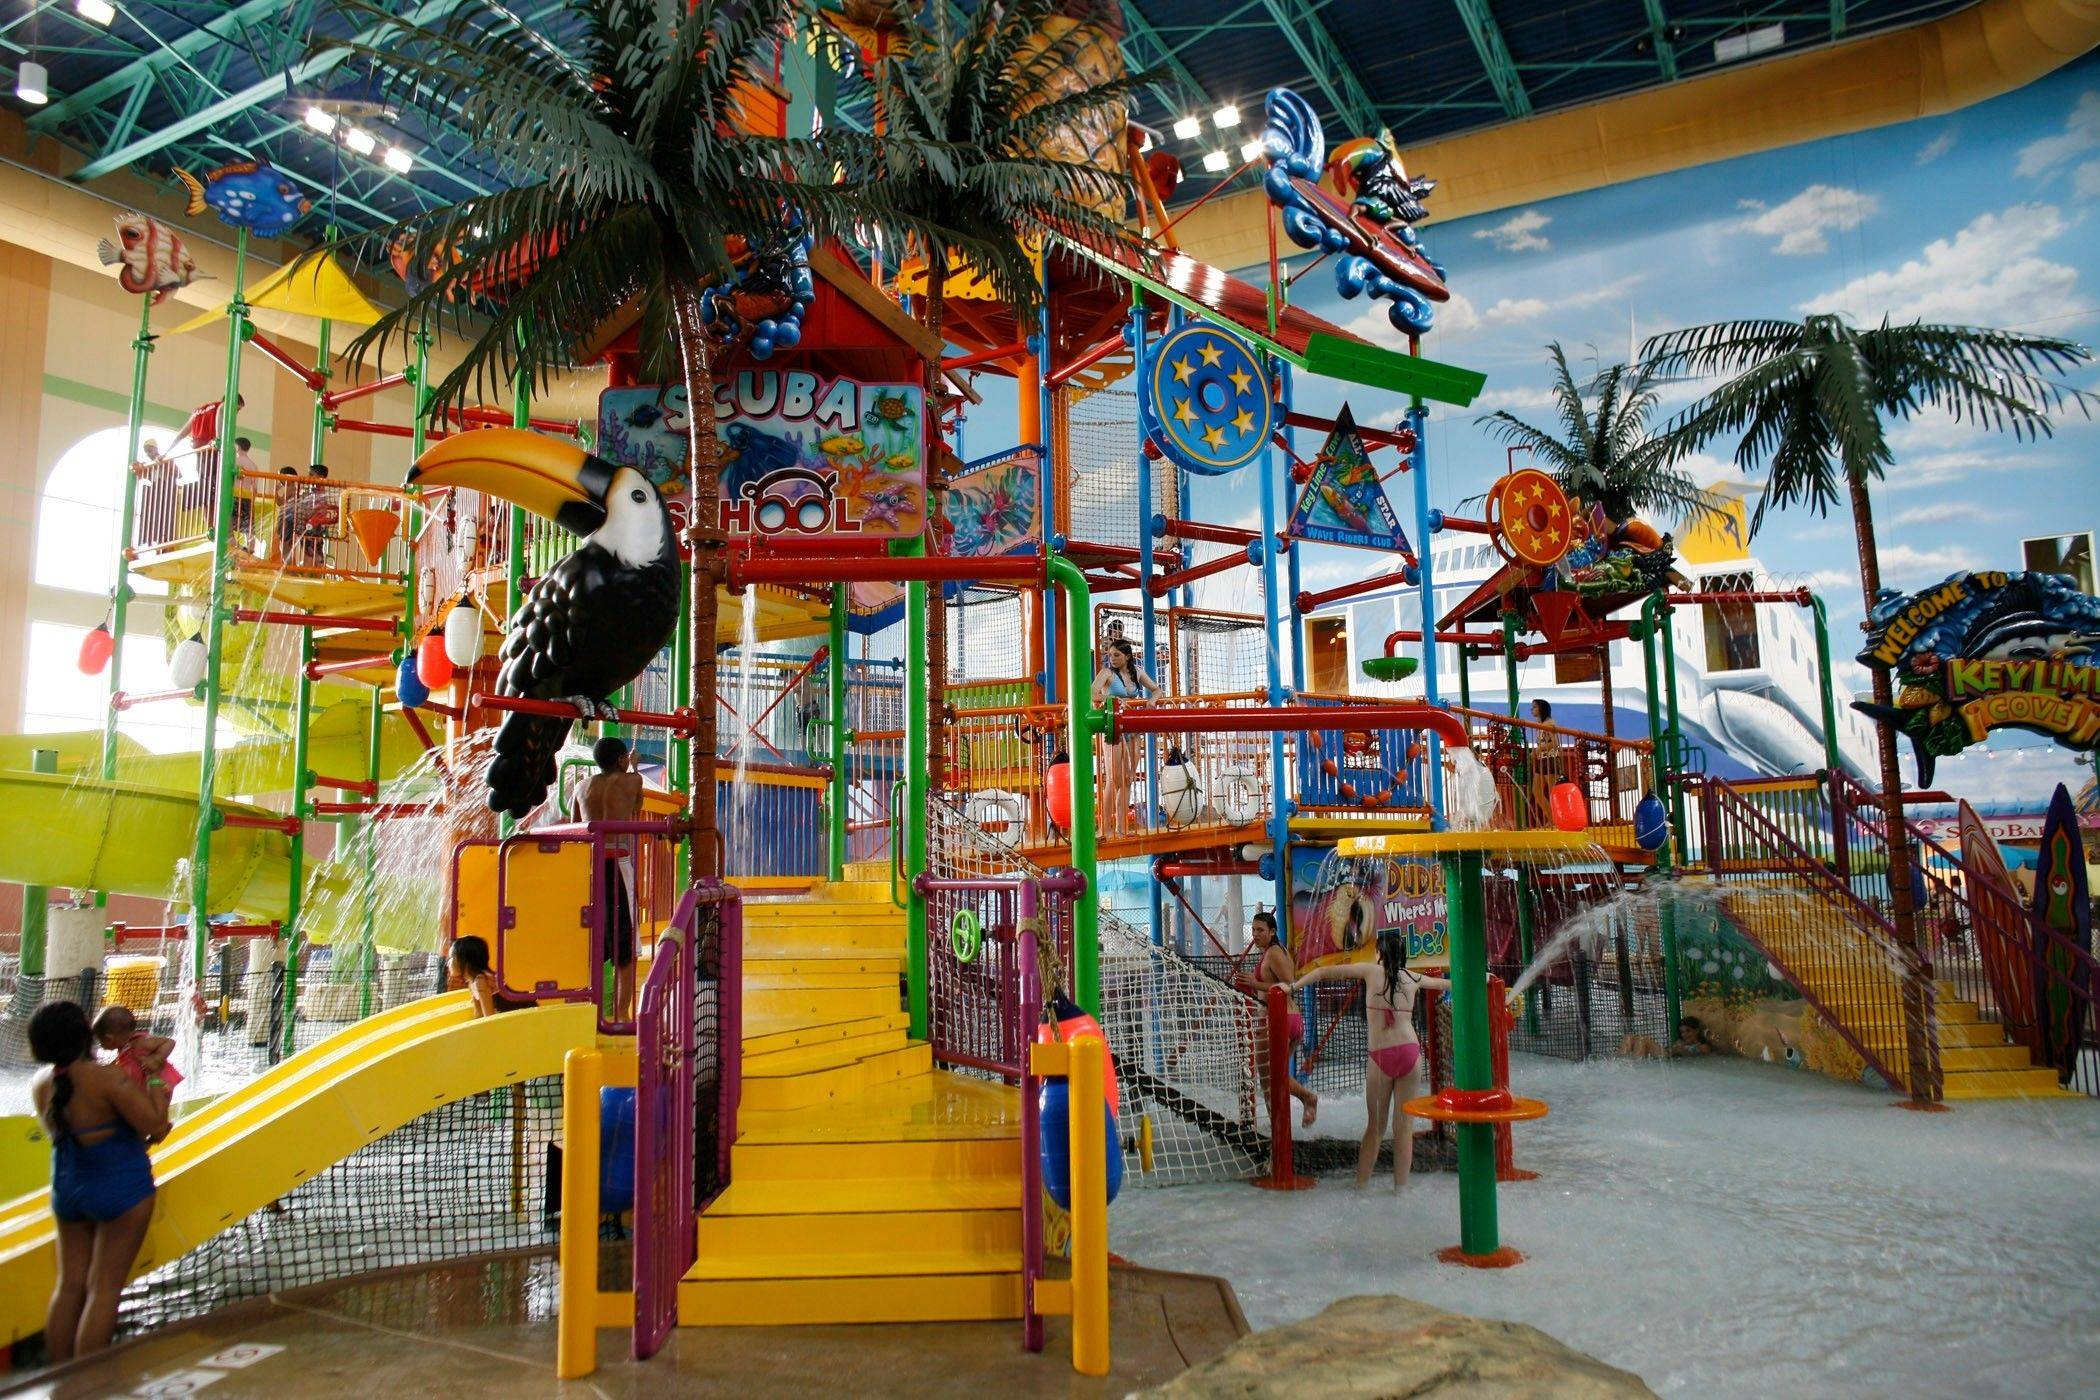 KeyLime Cove in Gurnee appeals to families with its 65,000-square-foot indoor water park.